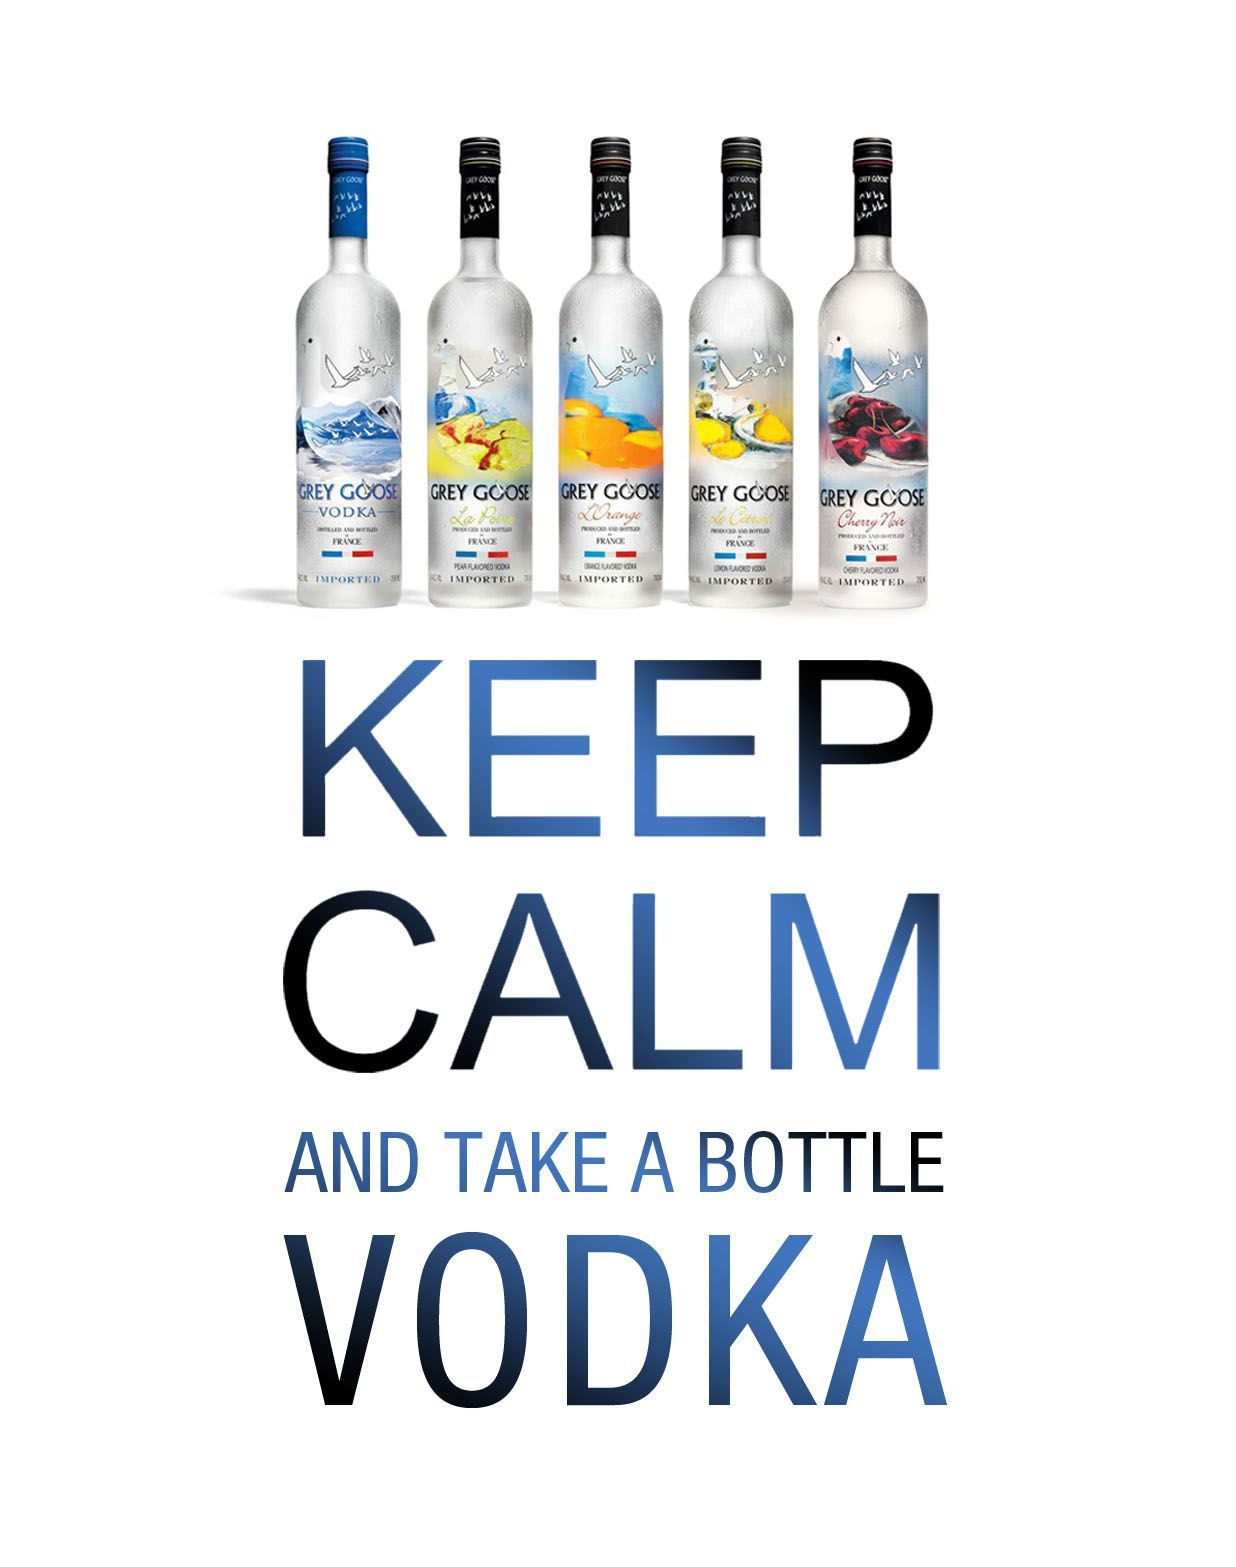 Greygoose Vodka Quotes And Keep Calm Vodka Drink Recipe Vodka Love Cocktails Russian Messy Whytaboo Com Au Vodka Vodka Quotes Coffee Humor